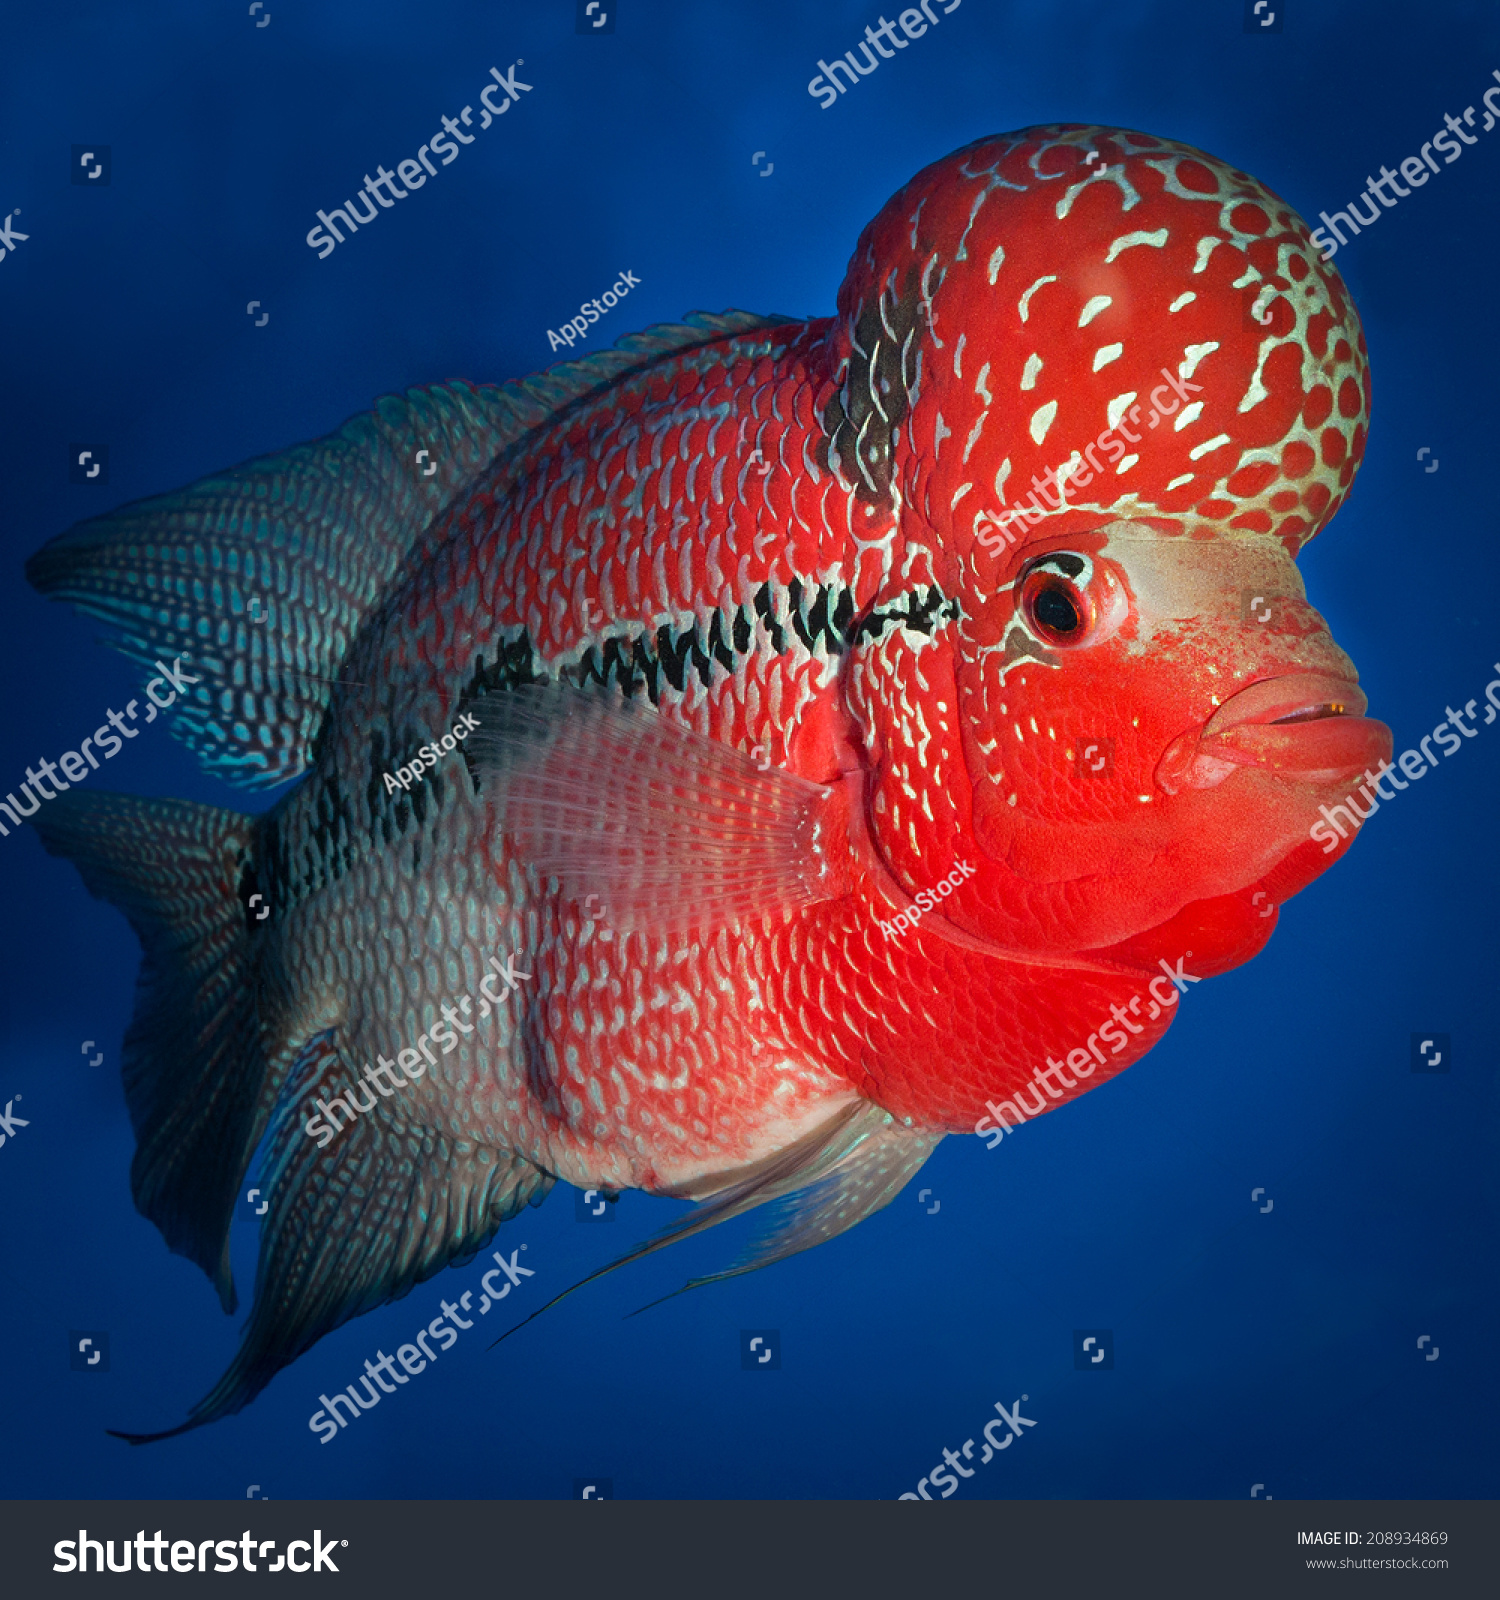 Flowerhorn Cichlid Fish On Blue Background Stock Photo (Royalty Free ...